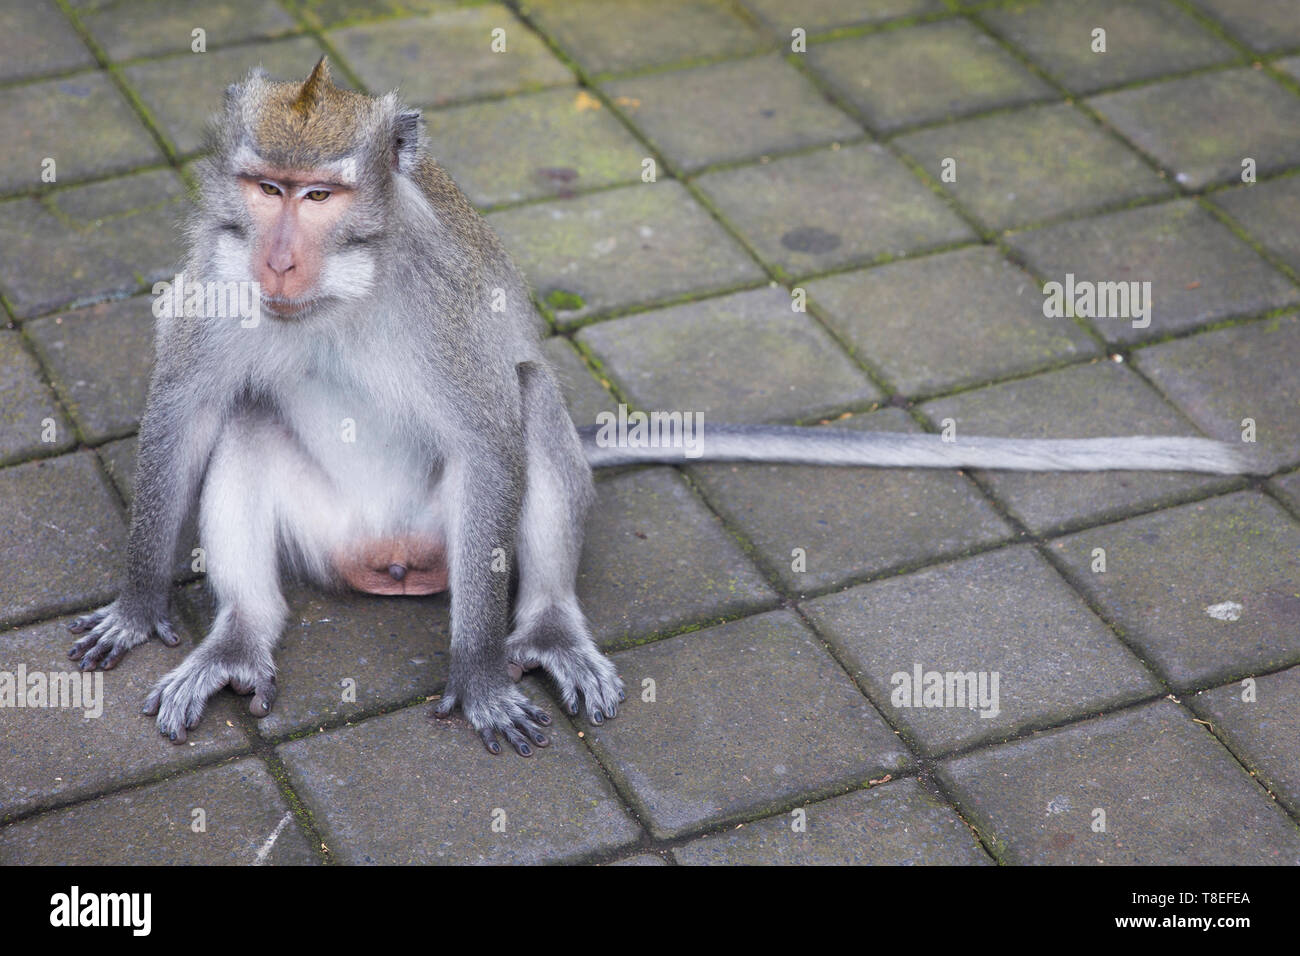 Balinese long tailed monkey (Macaca fascicularis) in Sacred Monkey Forest Sanctuary at Bali, Indonesia - Stock Image